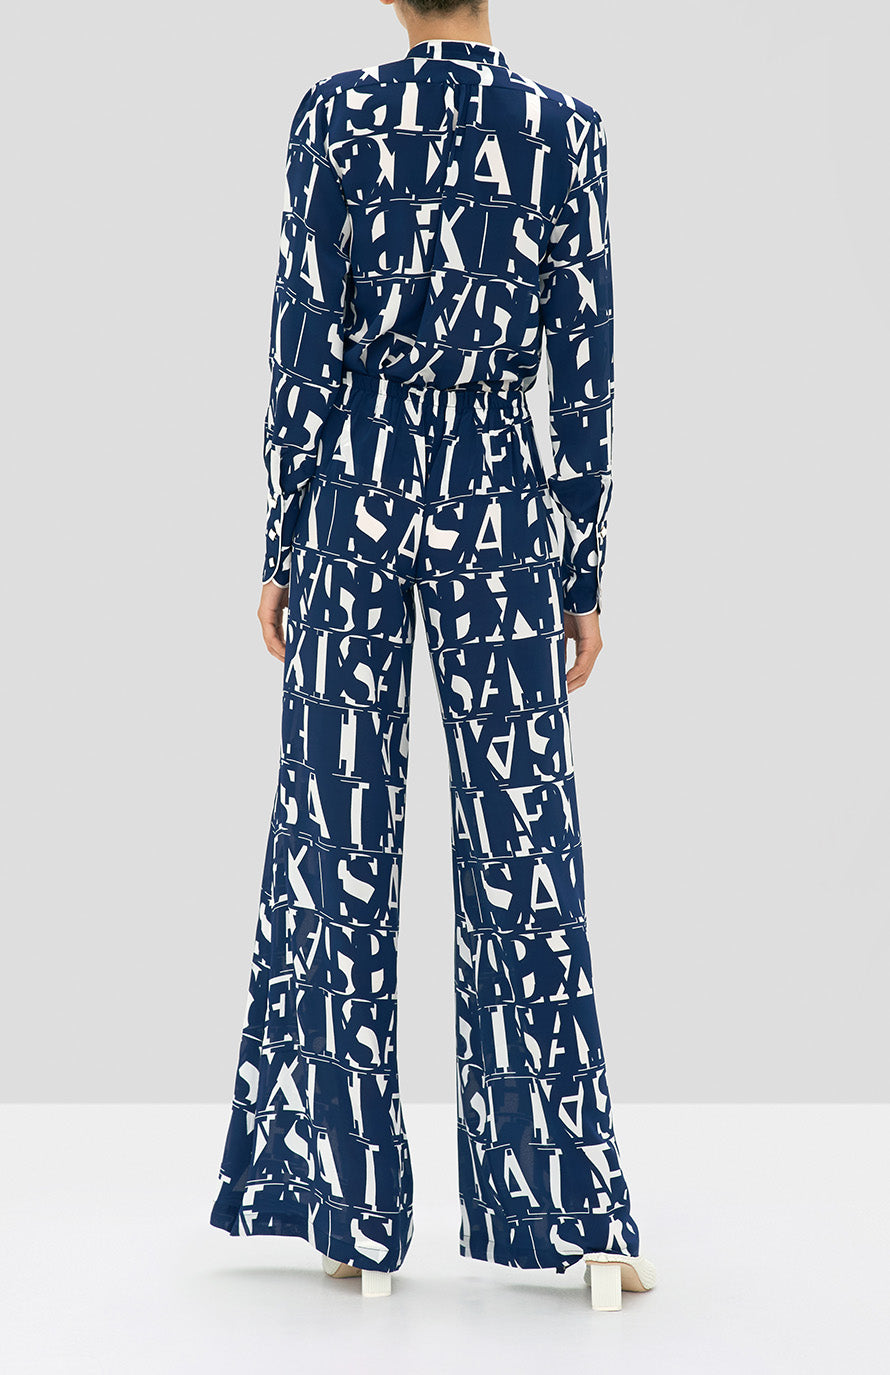 Alexis Goda Pant and Dotson Top in Navy Print - Rear View